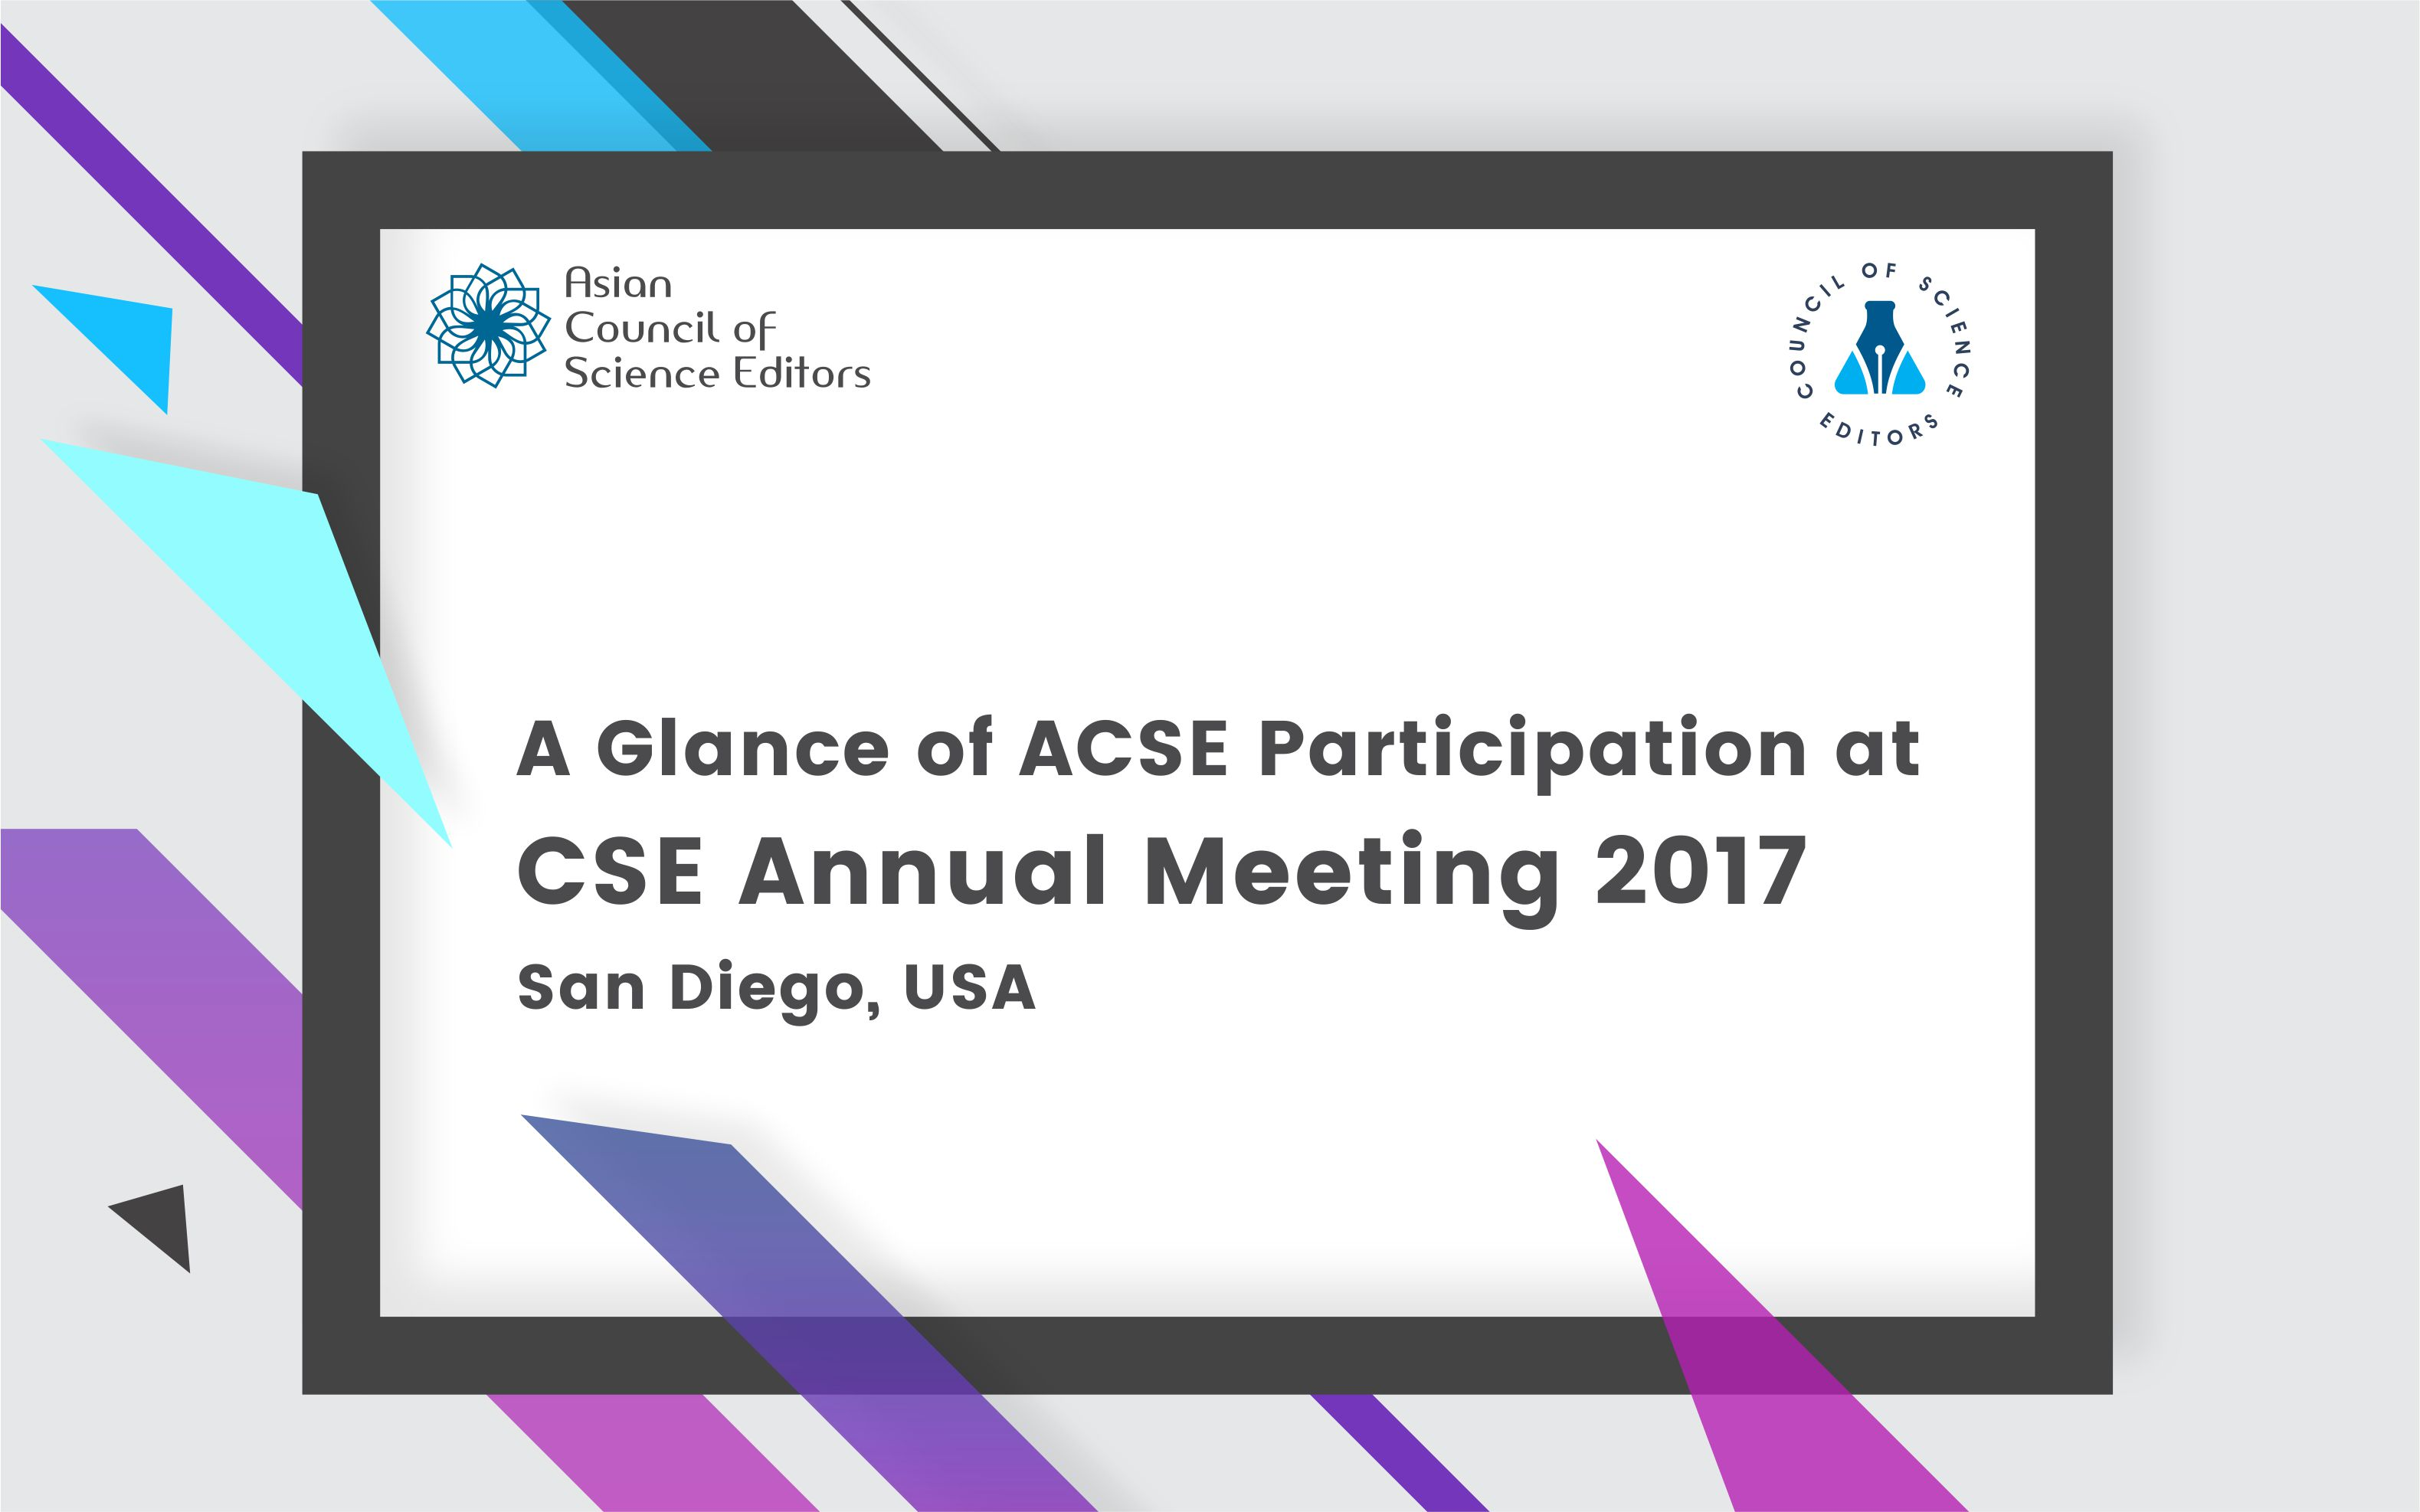 A Glance of ACSE Participation at CSE Annual Meeting 2017